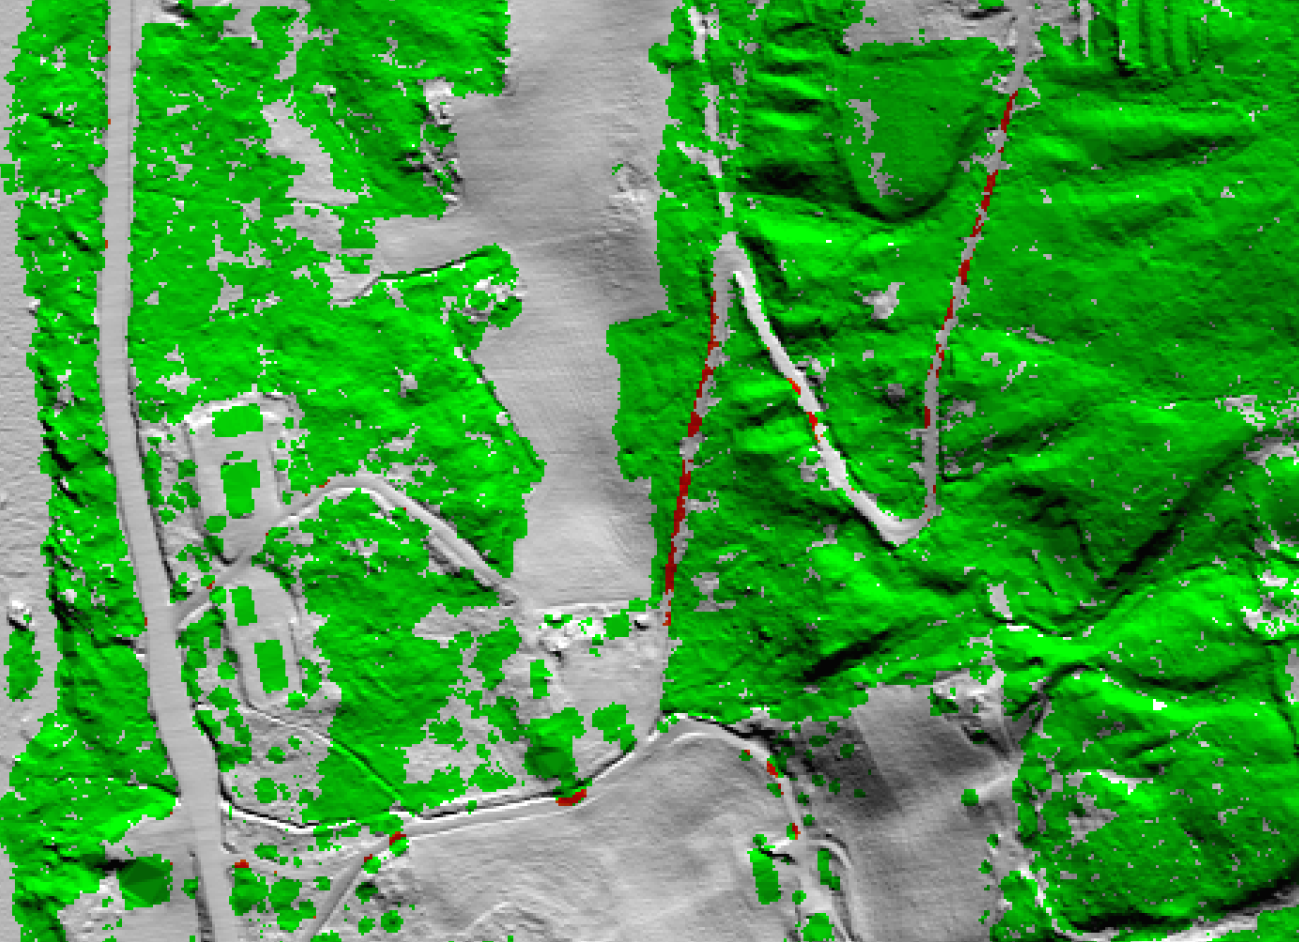 Result of automatic detection of overhanging vegetation along roads. Green: vegetation (and also buildings) higher than 1 m outside of roads. Red: vegetation higher than 1 m overlapping roads. White: No vegetation higher than 1 m.